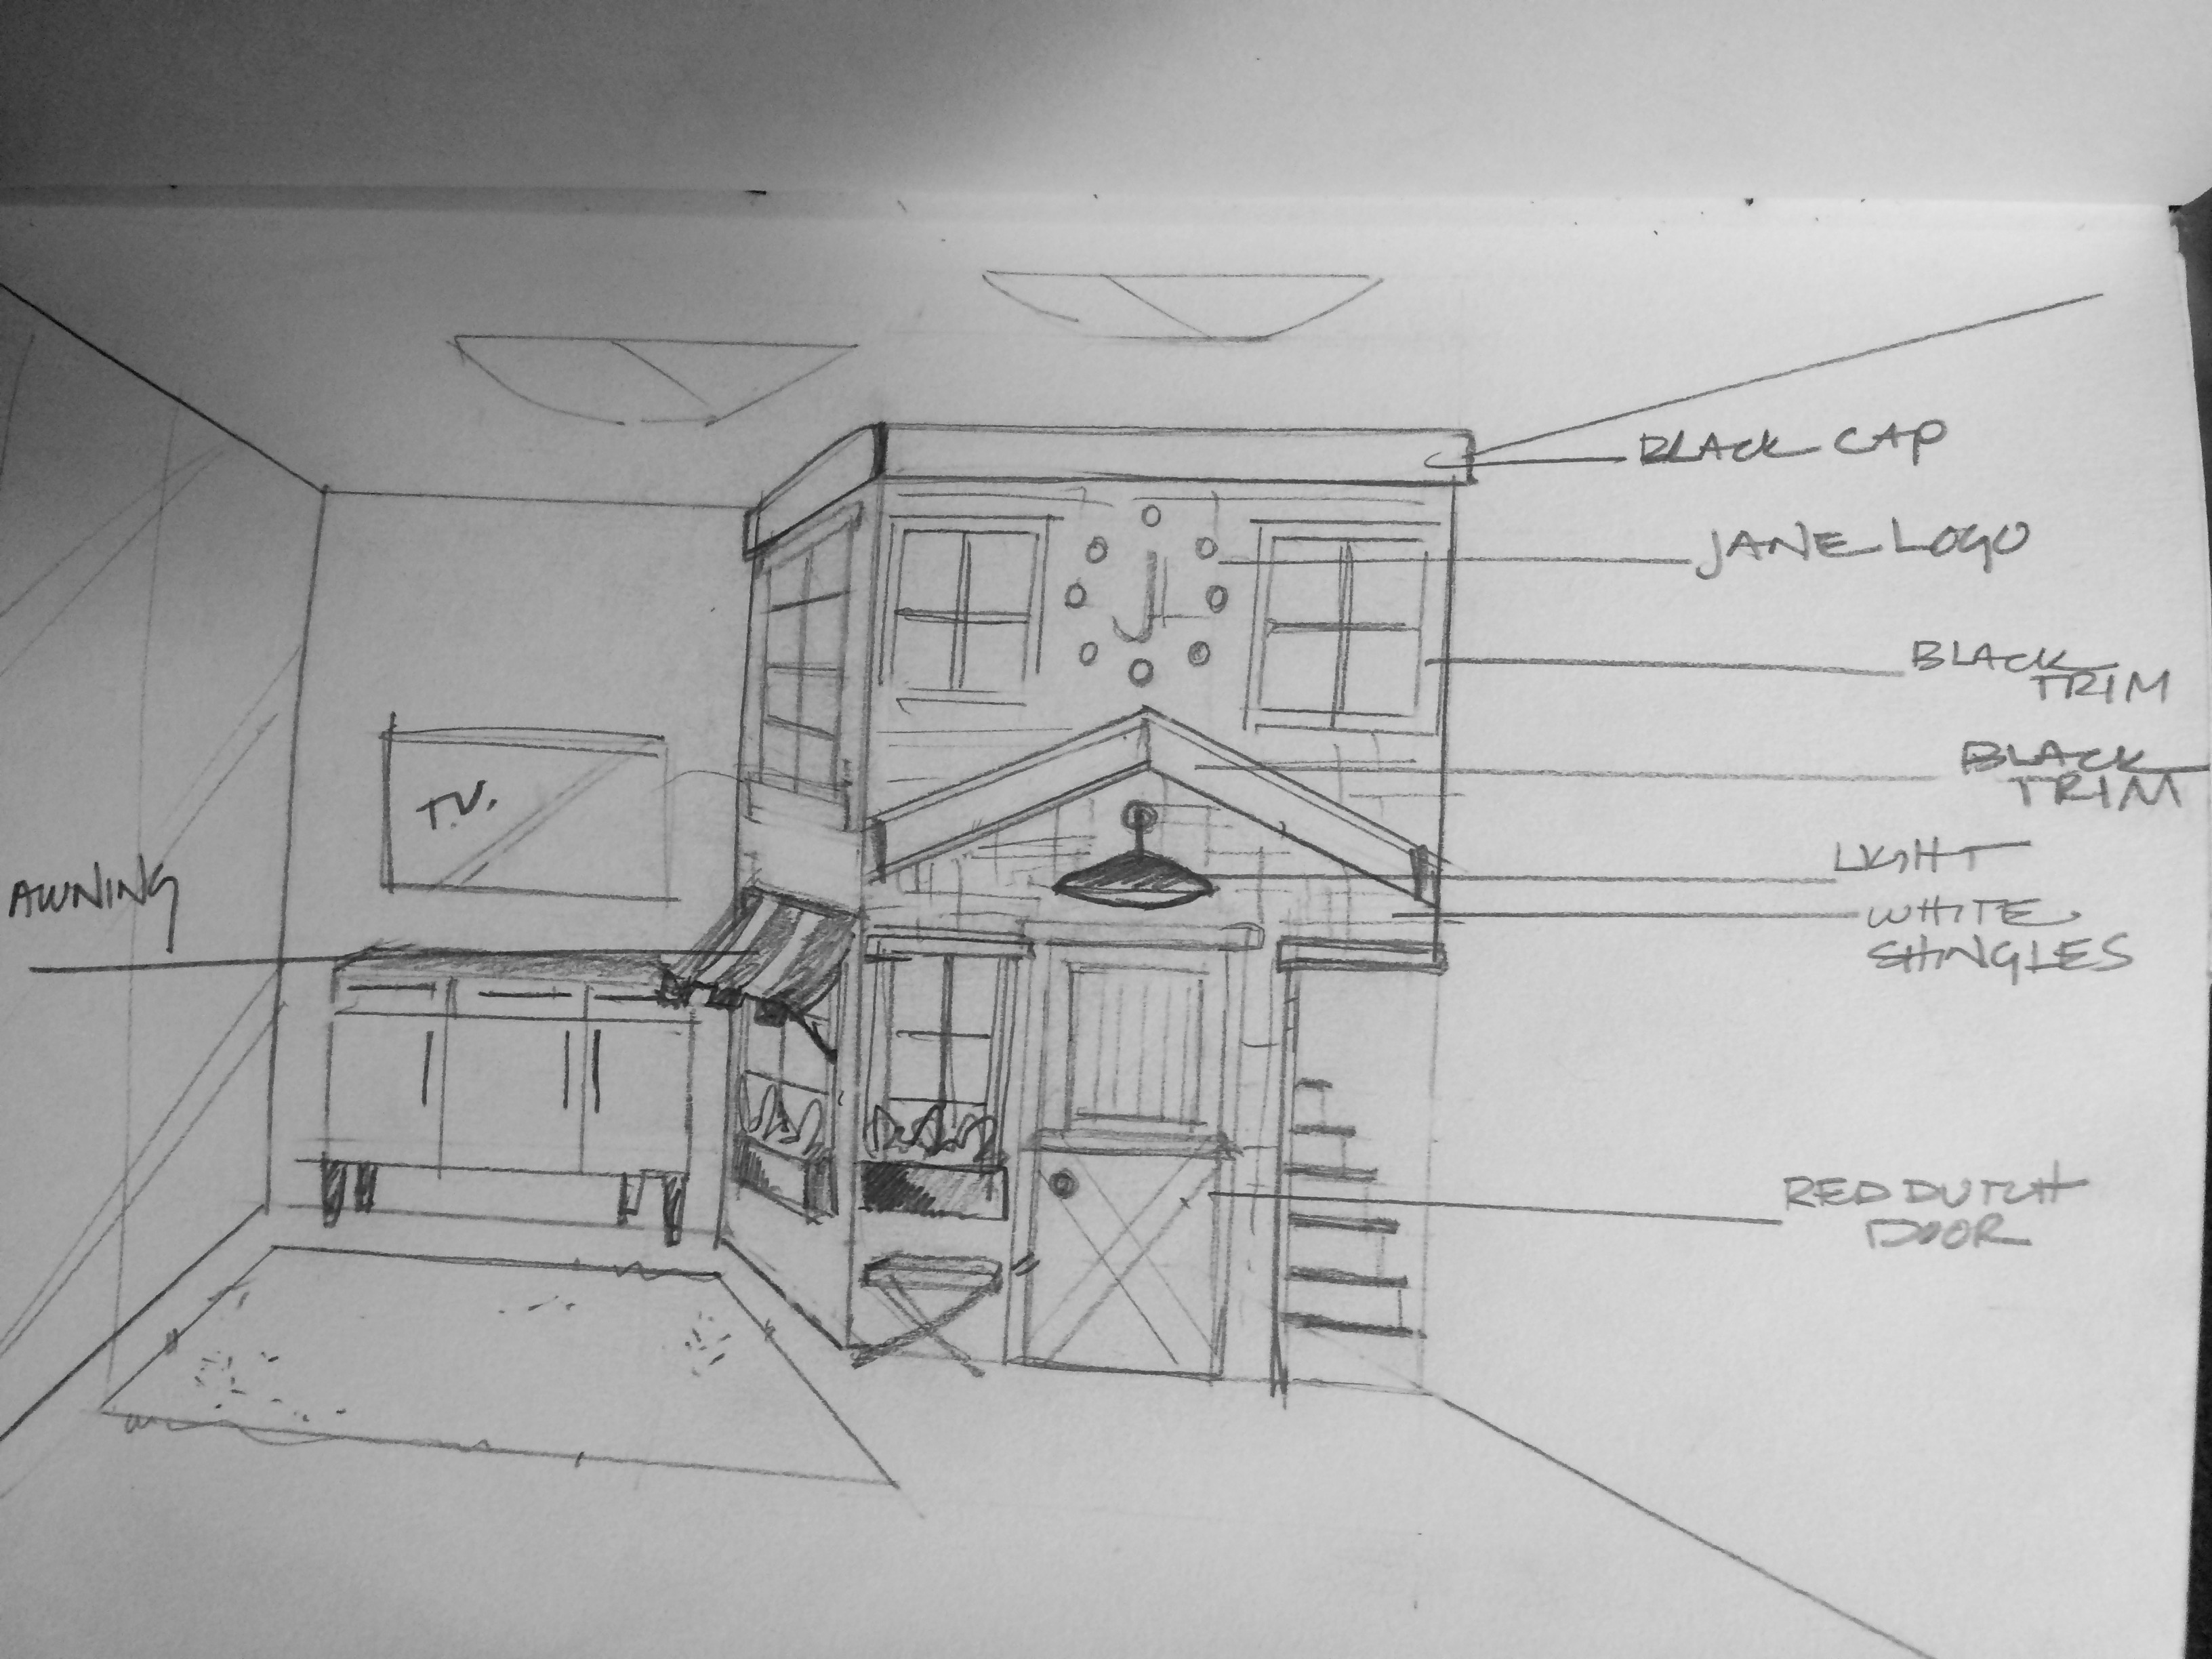 PLAYHOUSE SKETCH